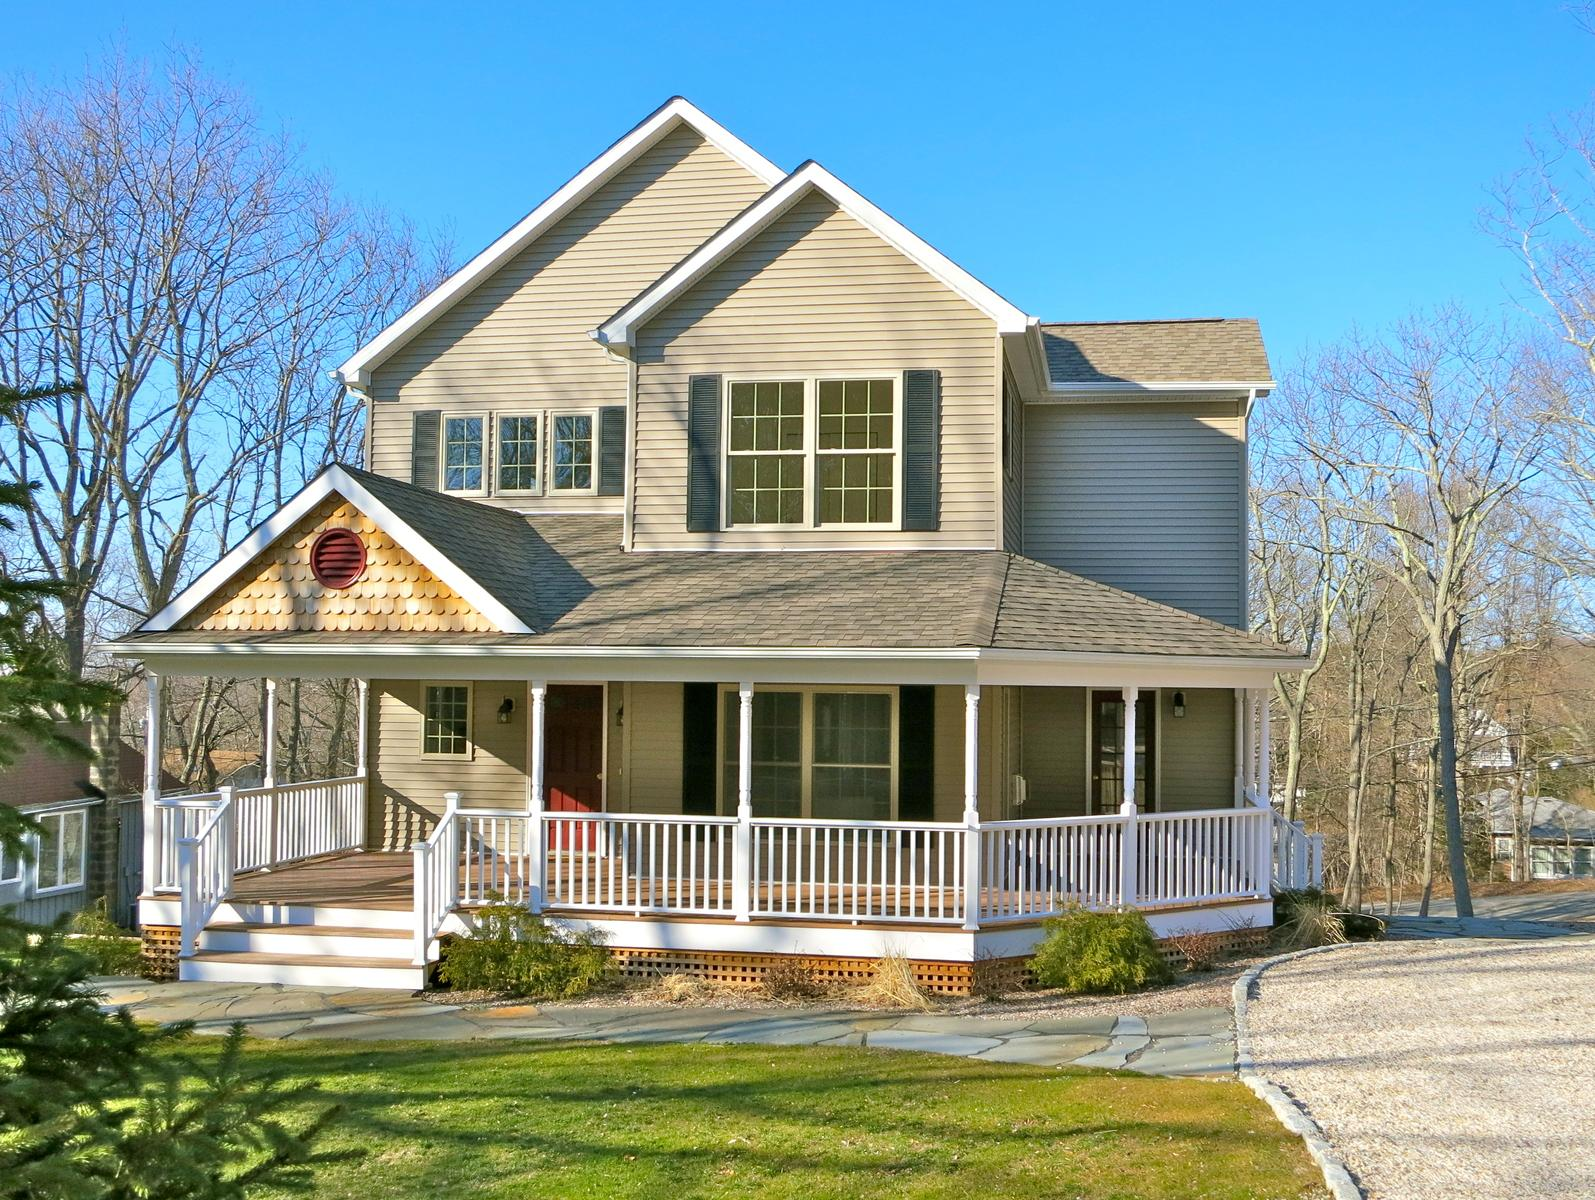 11 Vickers St (6 Downer Place) Sag Harbor Village, New York